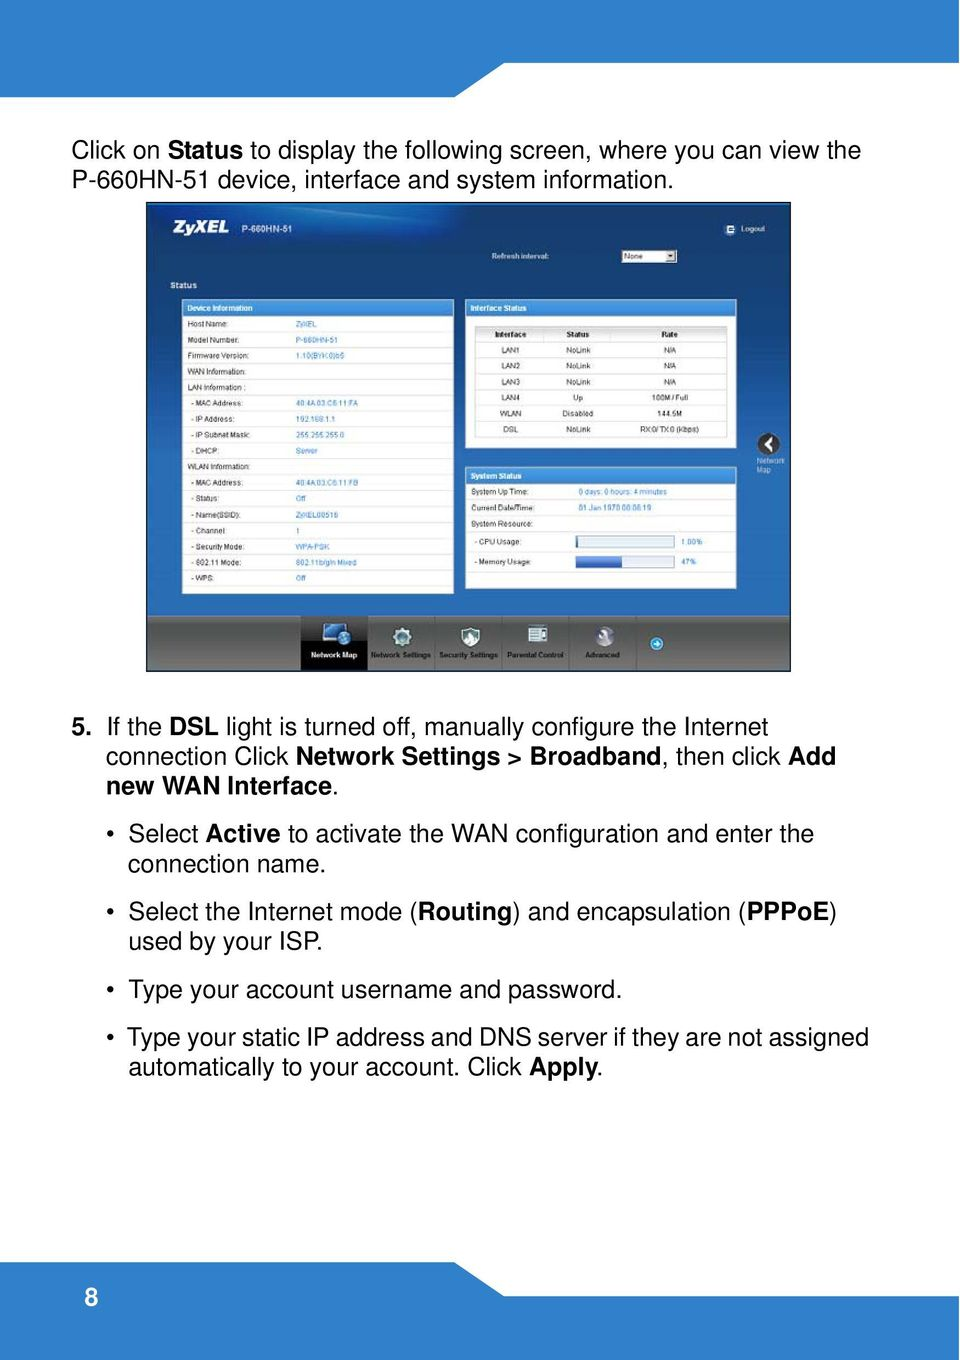 Select Active to activate the WAN configuration and enter the connection name.